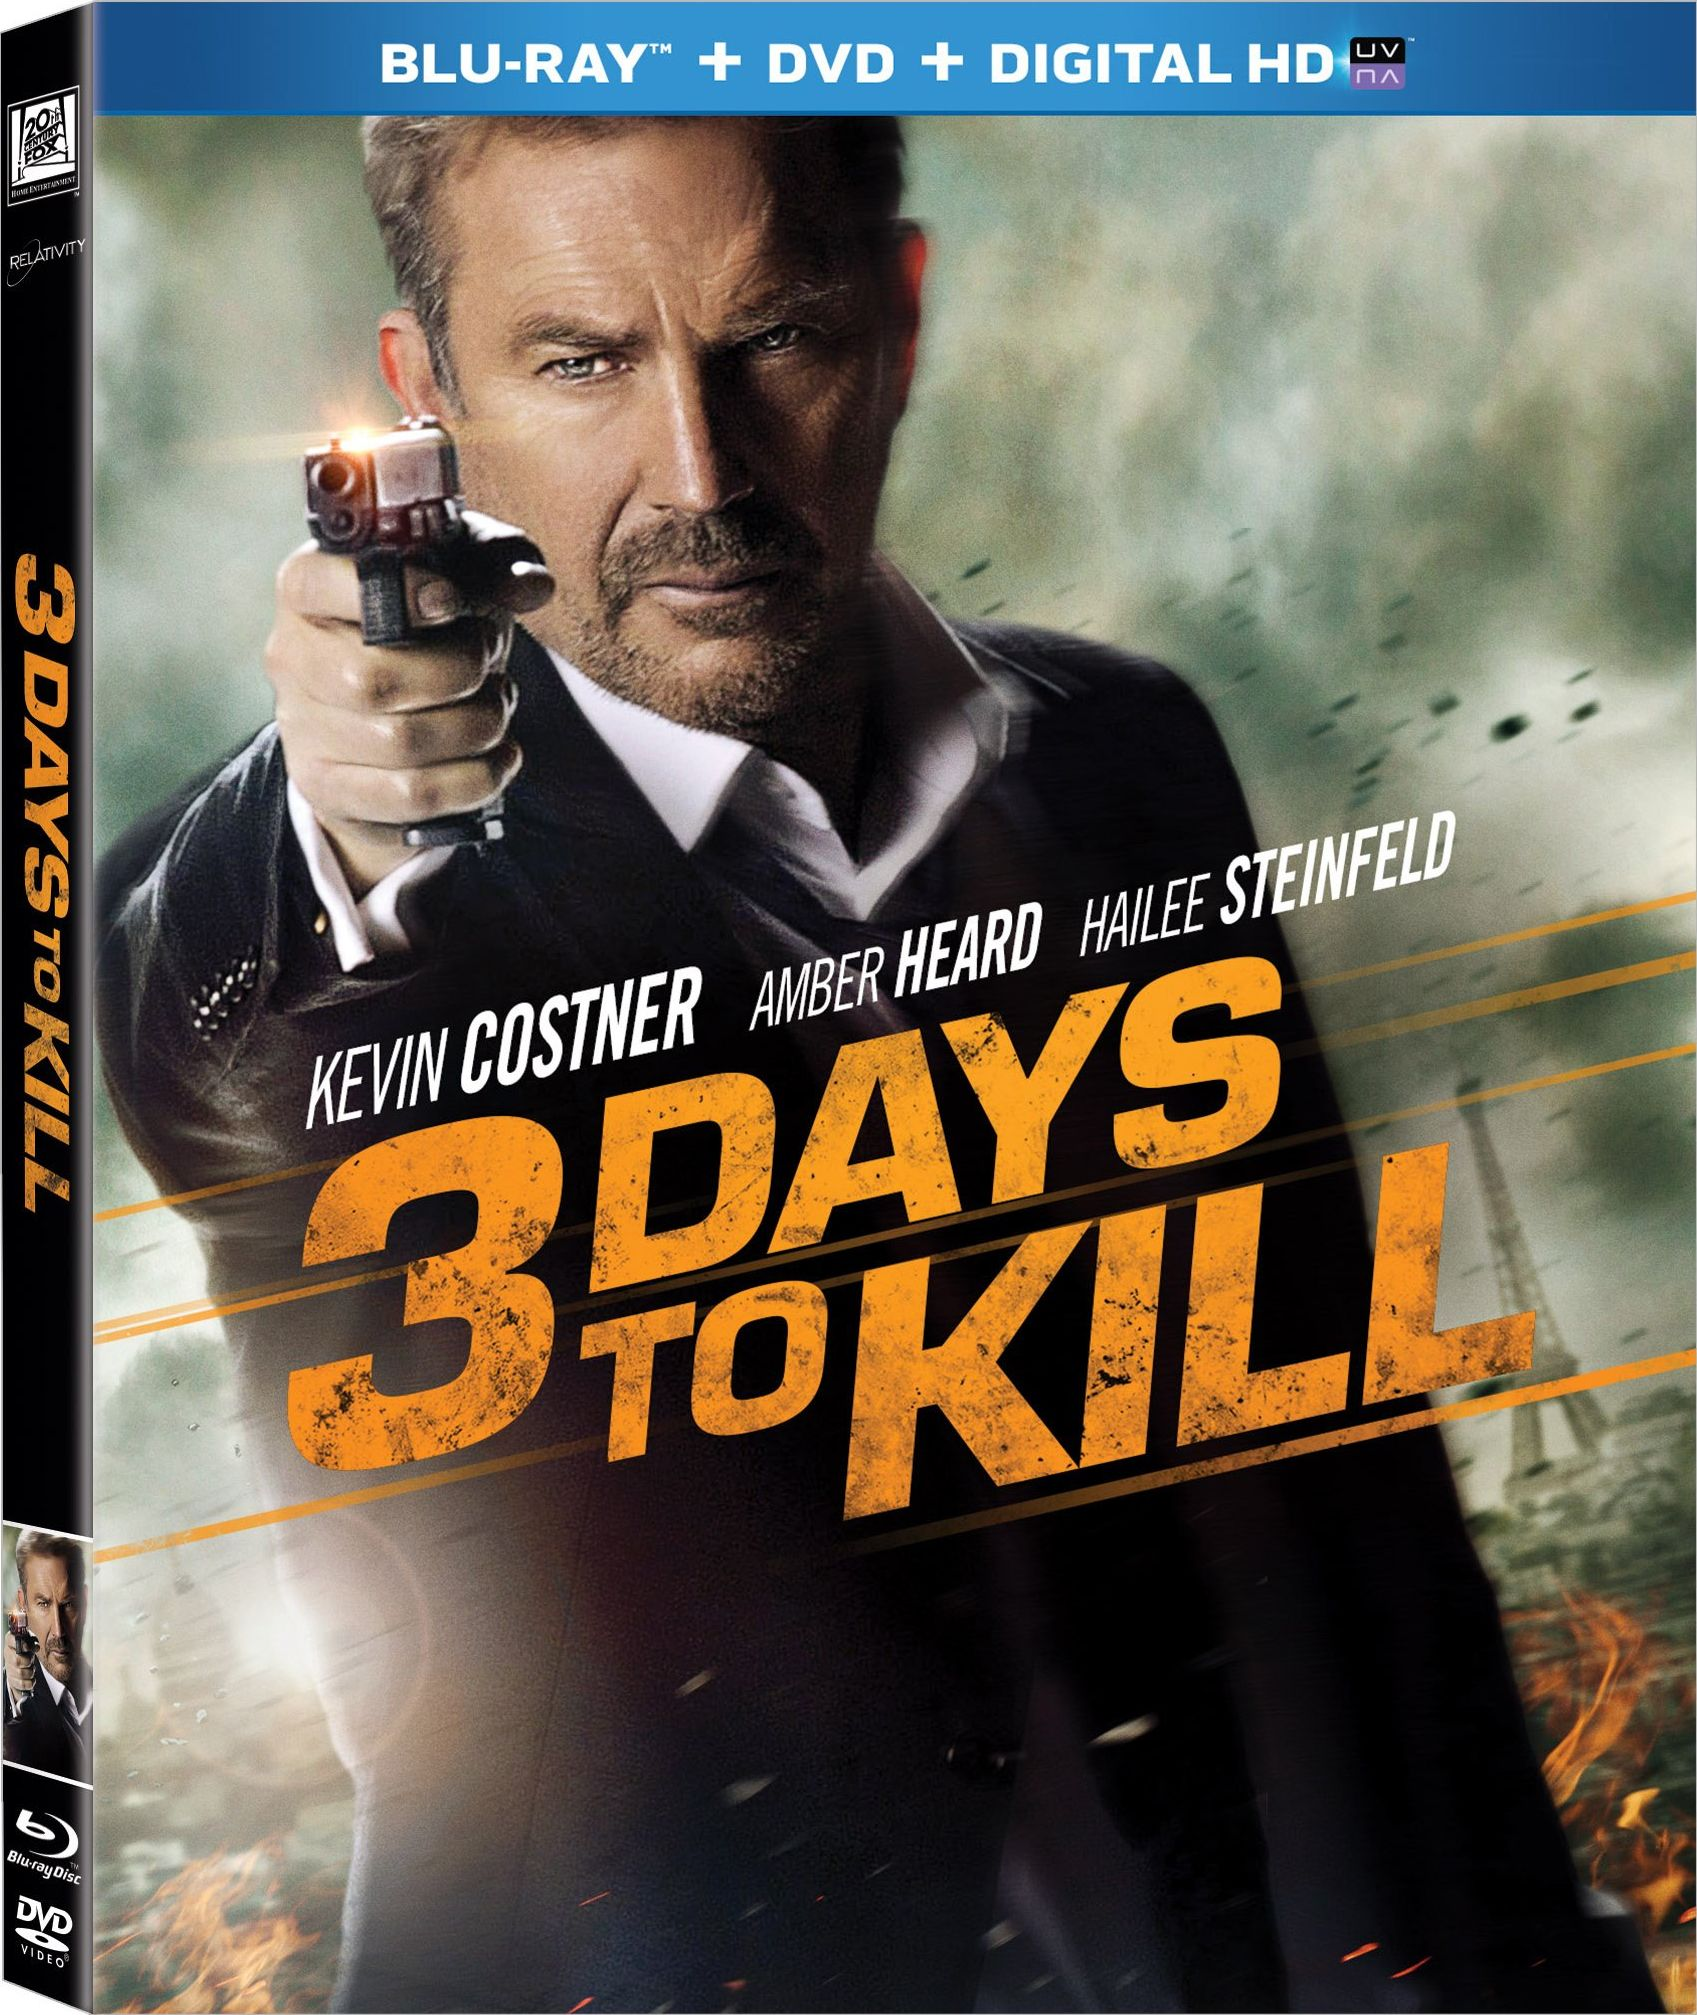 3 Days to Kill was released on Blu-ray in May 20, 2014